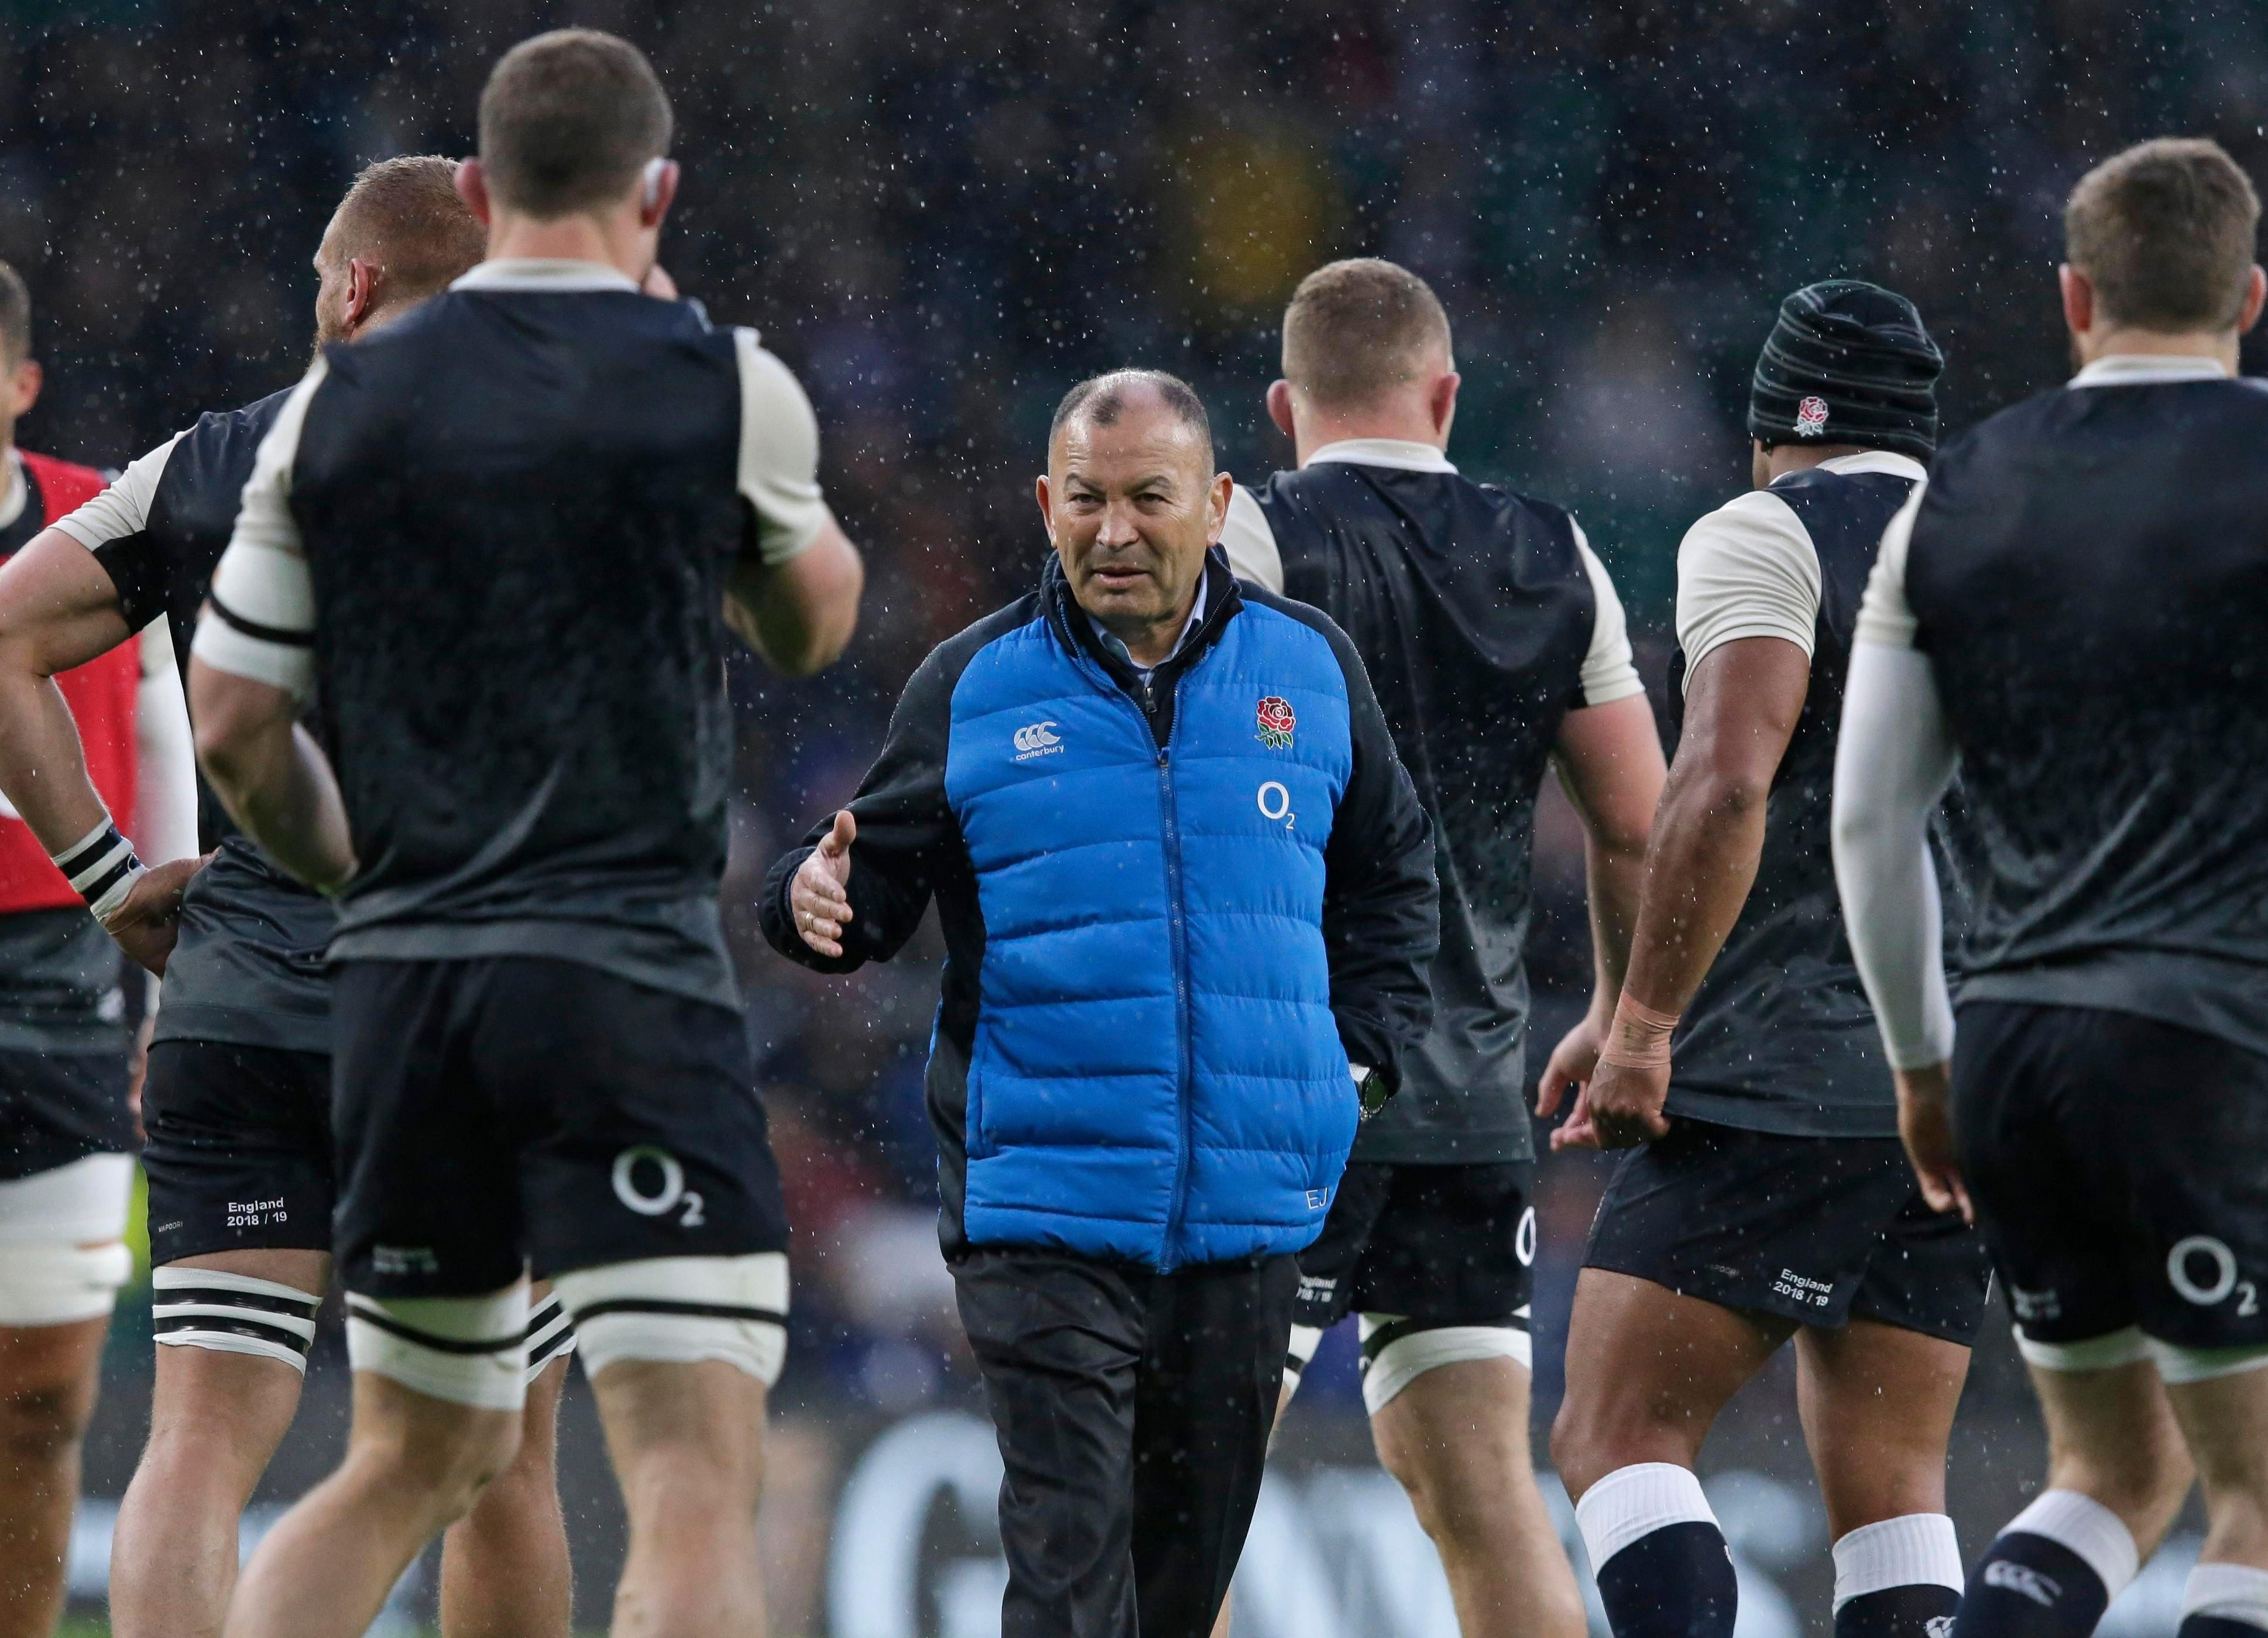 Jones praised his players for their conduct in defeat